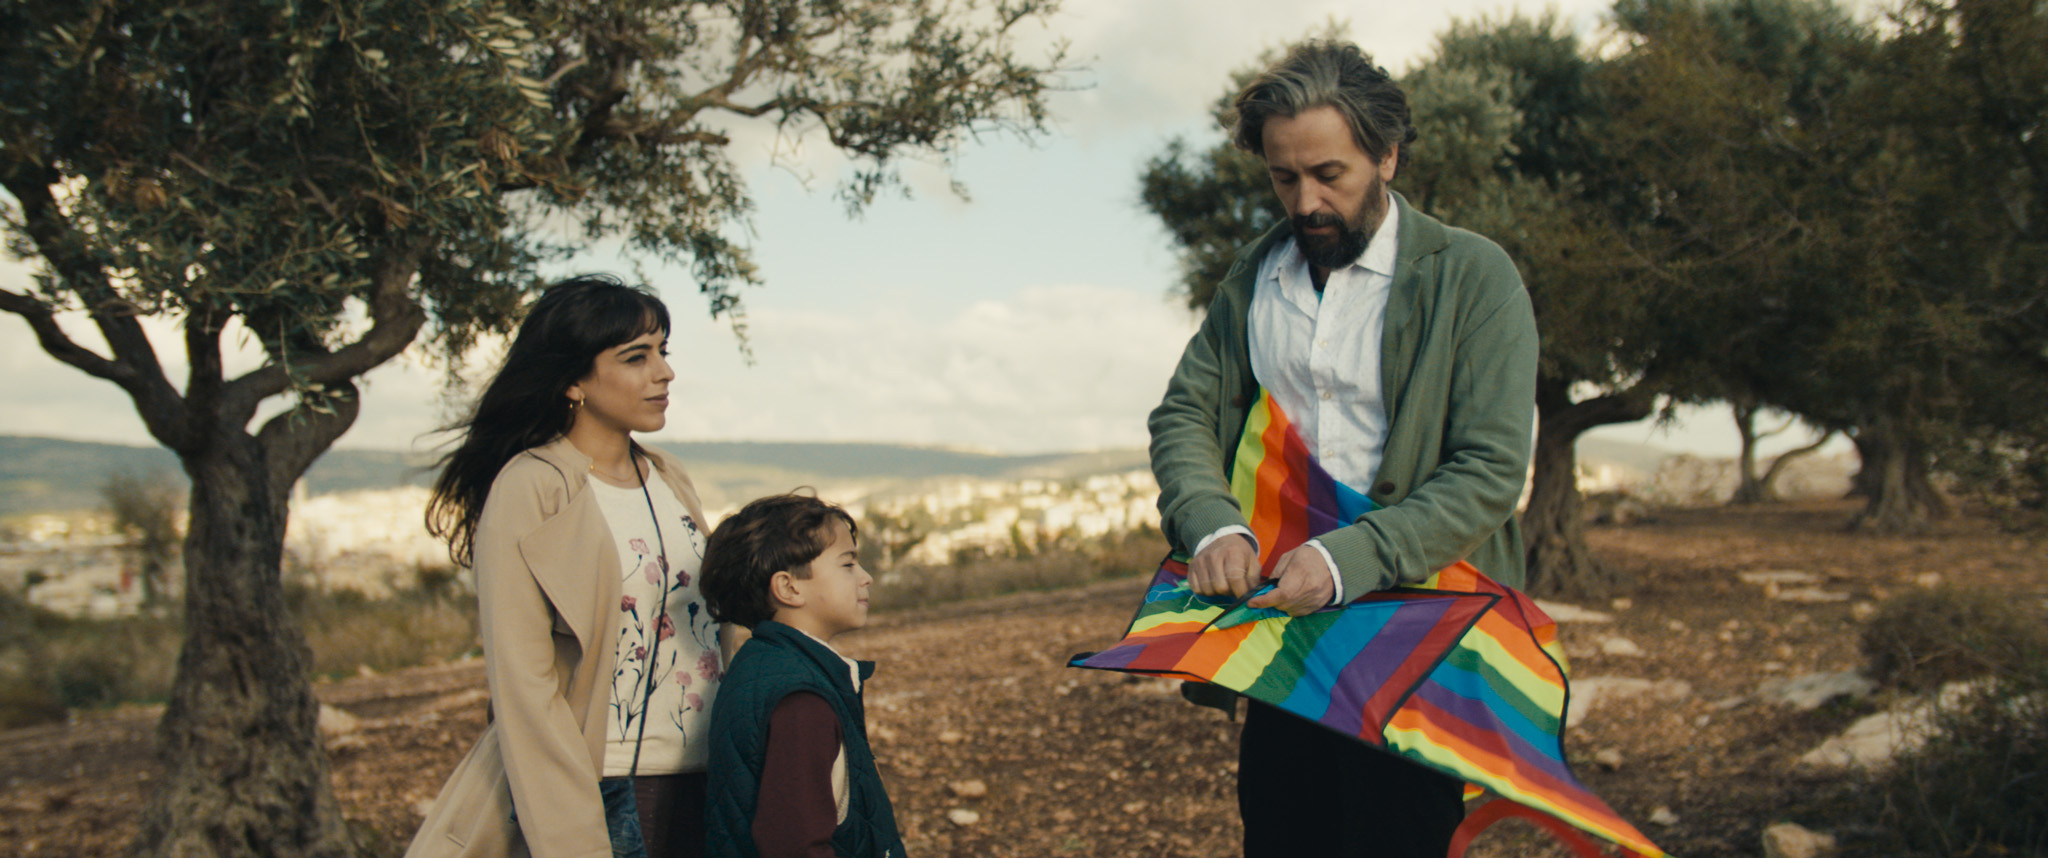 'Let It Be Morning' Review: A Wry, Low Key Satire of Israeli Palestinian Tensions From the Director of 'The Band's Visit'